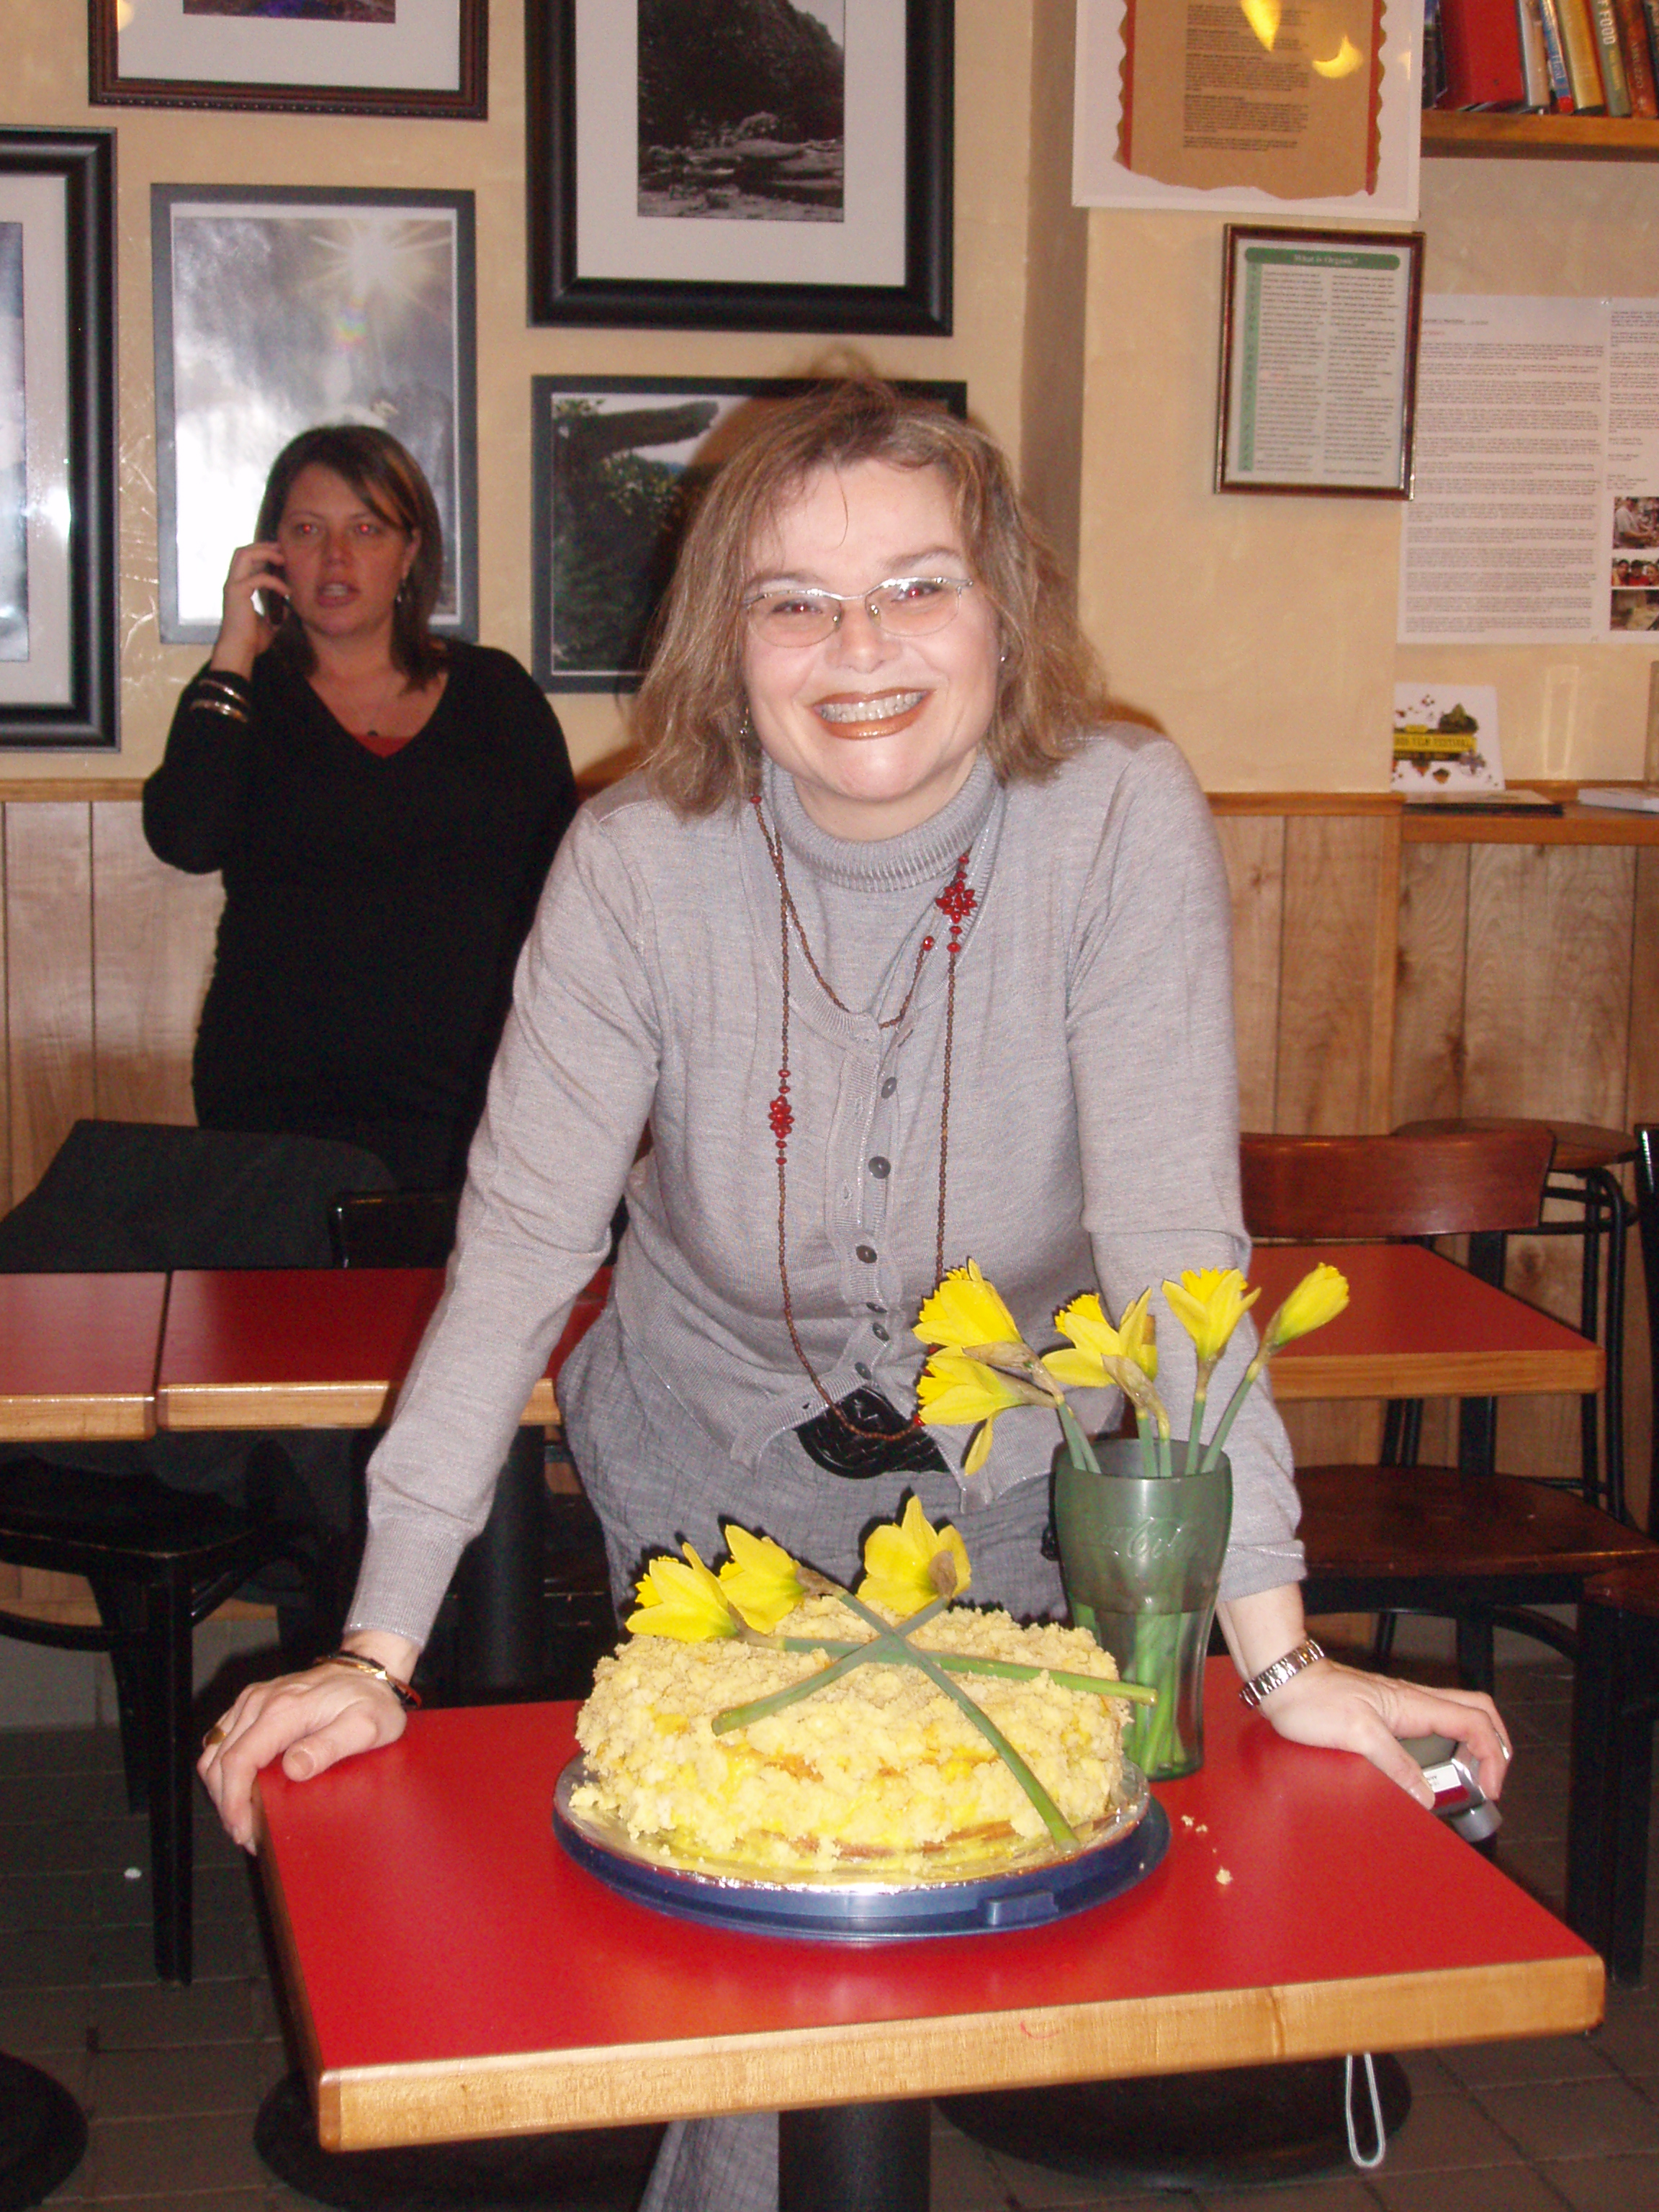 Silvia with the mimosa cake